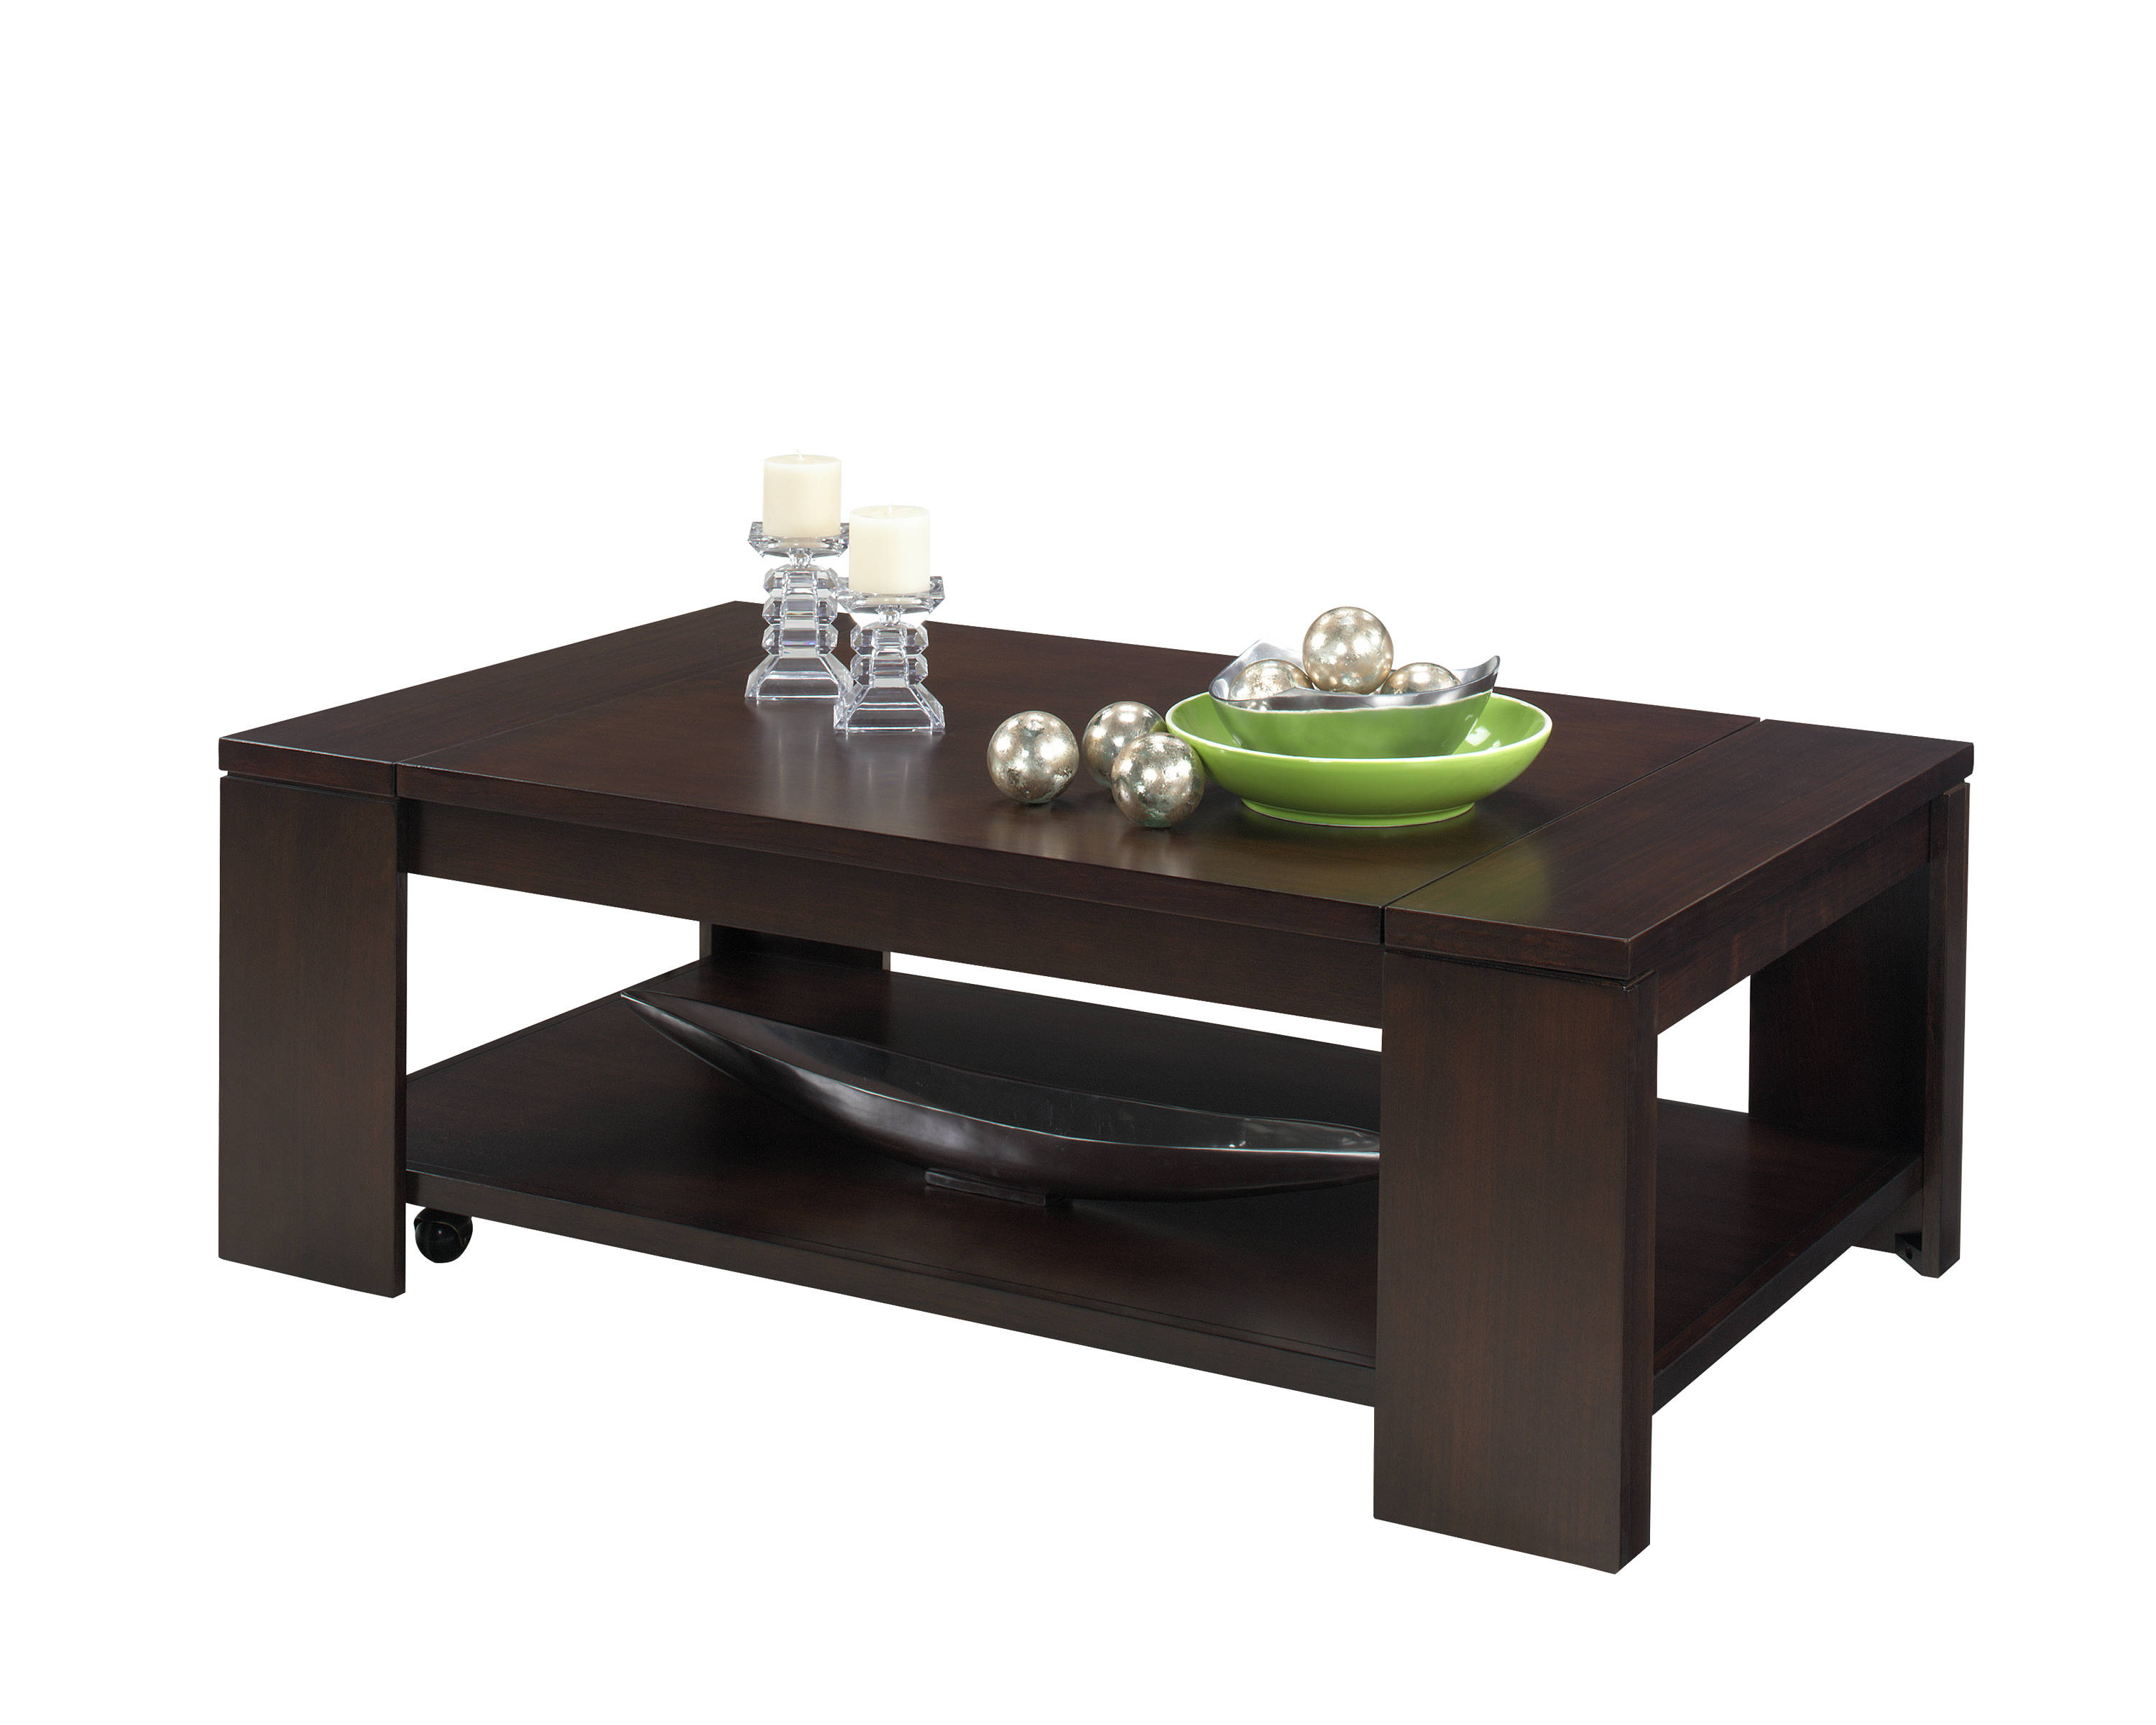 Waverly Vintage Walnut Rubberwood Mdf Castered Lift Top Cocktail Table Occasional Tables The